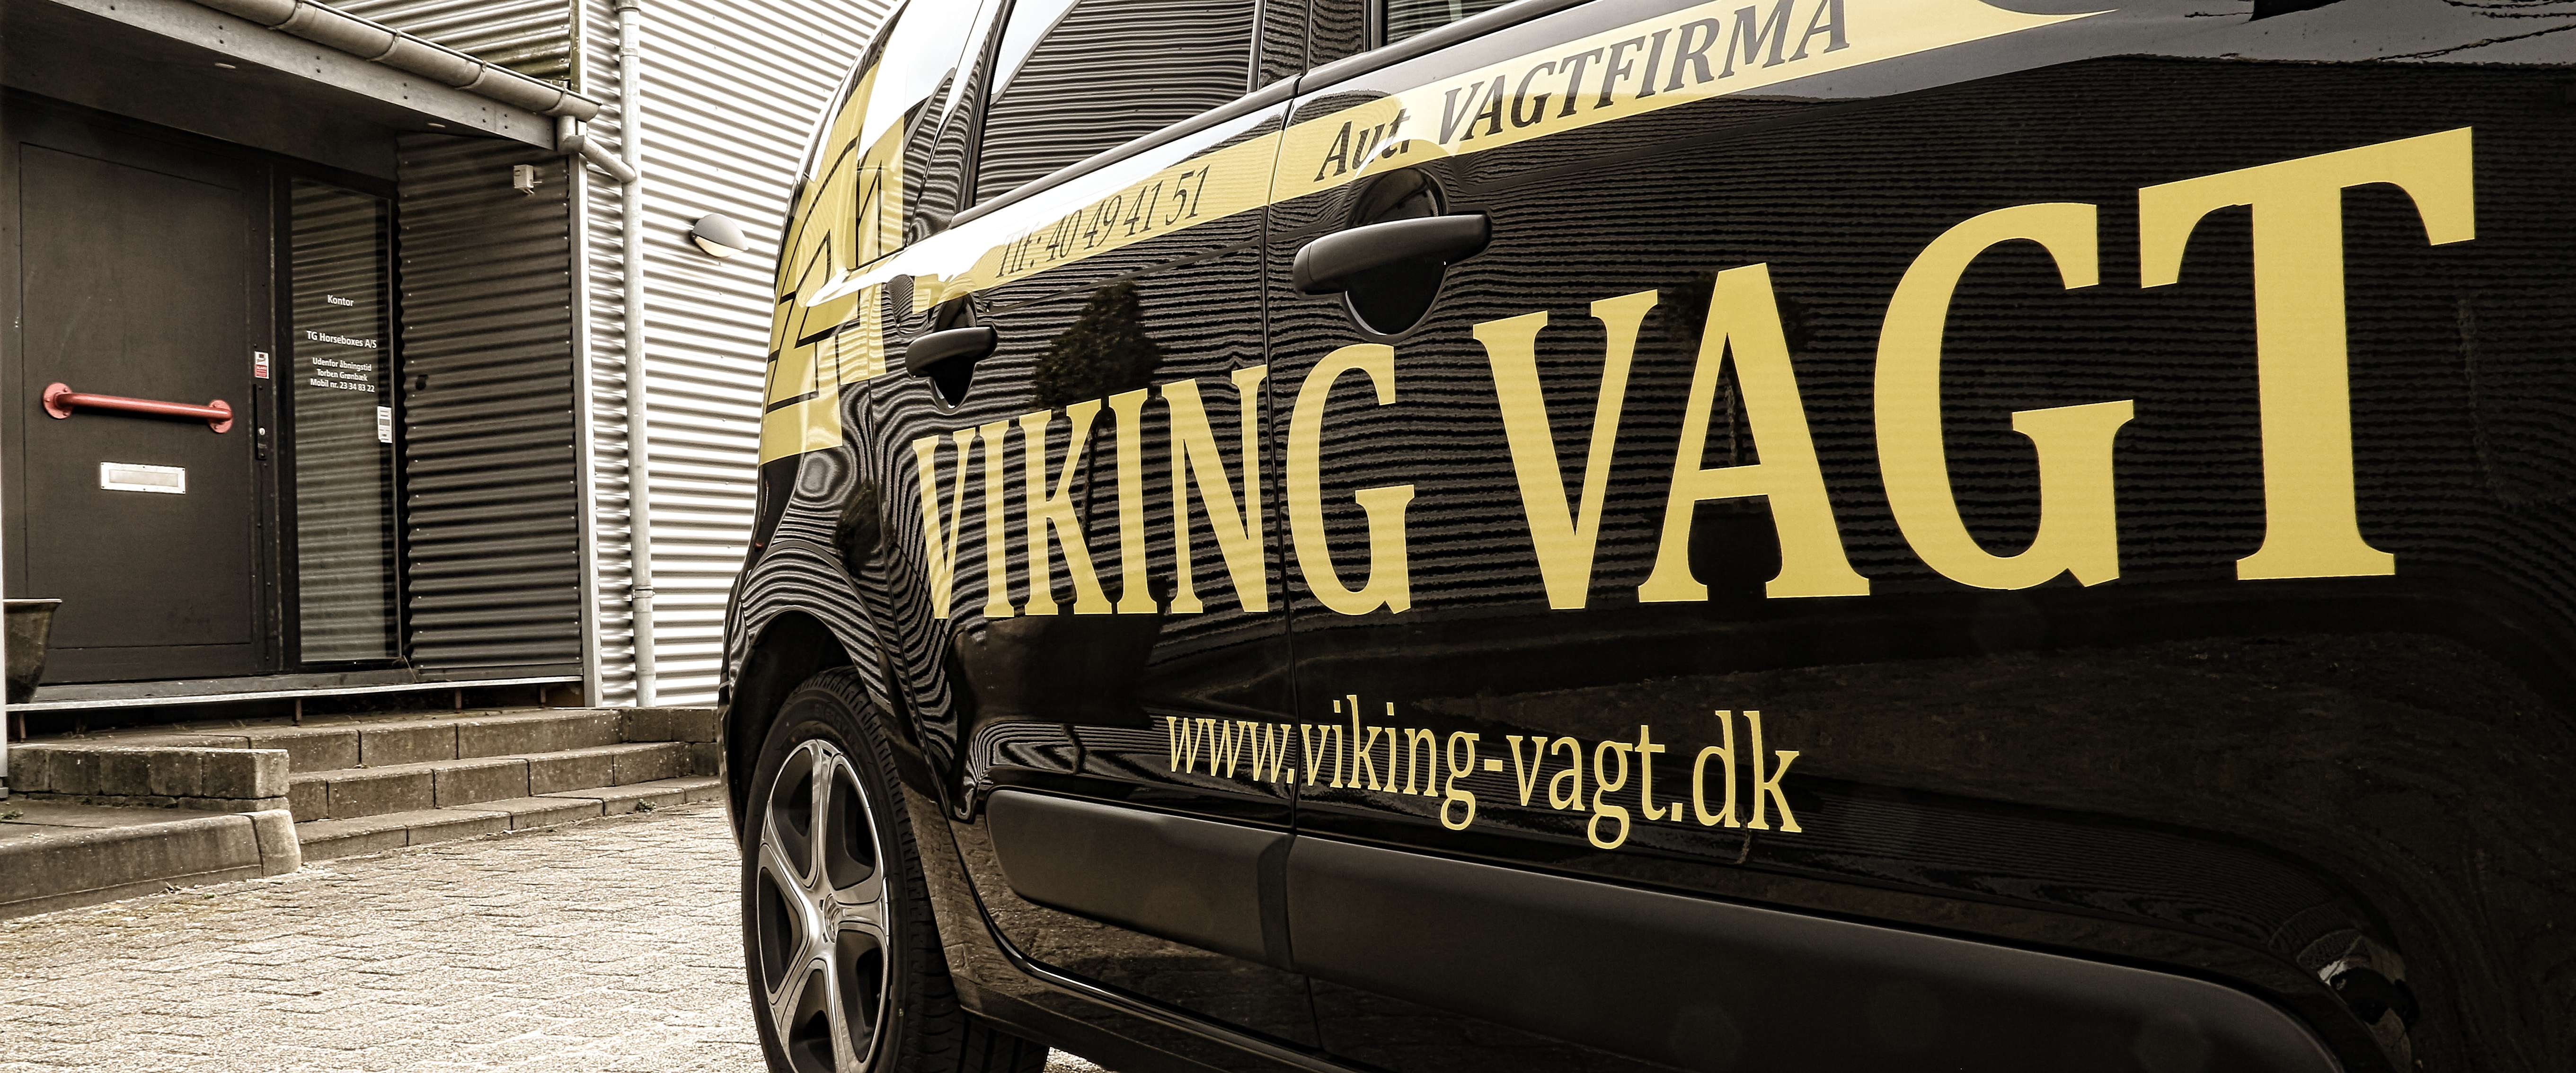 Viking-vagt-firma-8 copy1.jpg